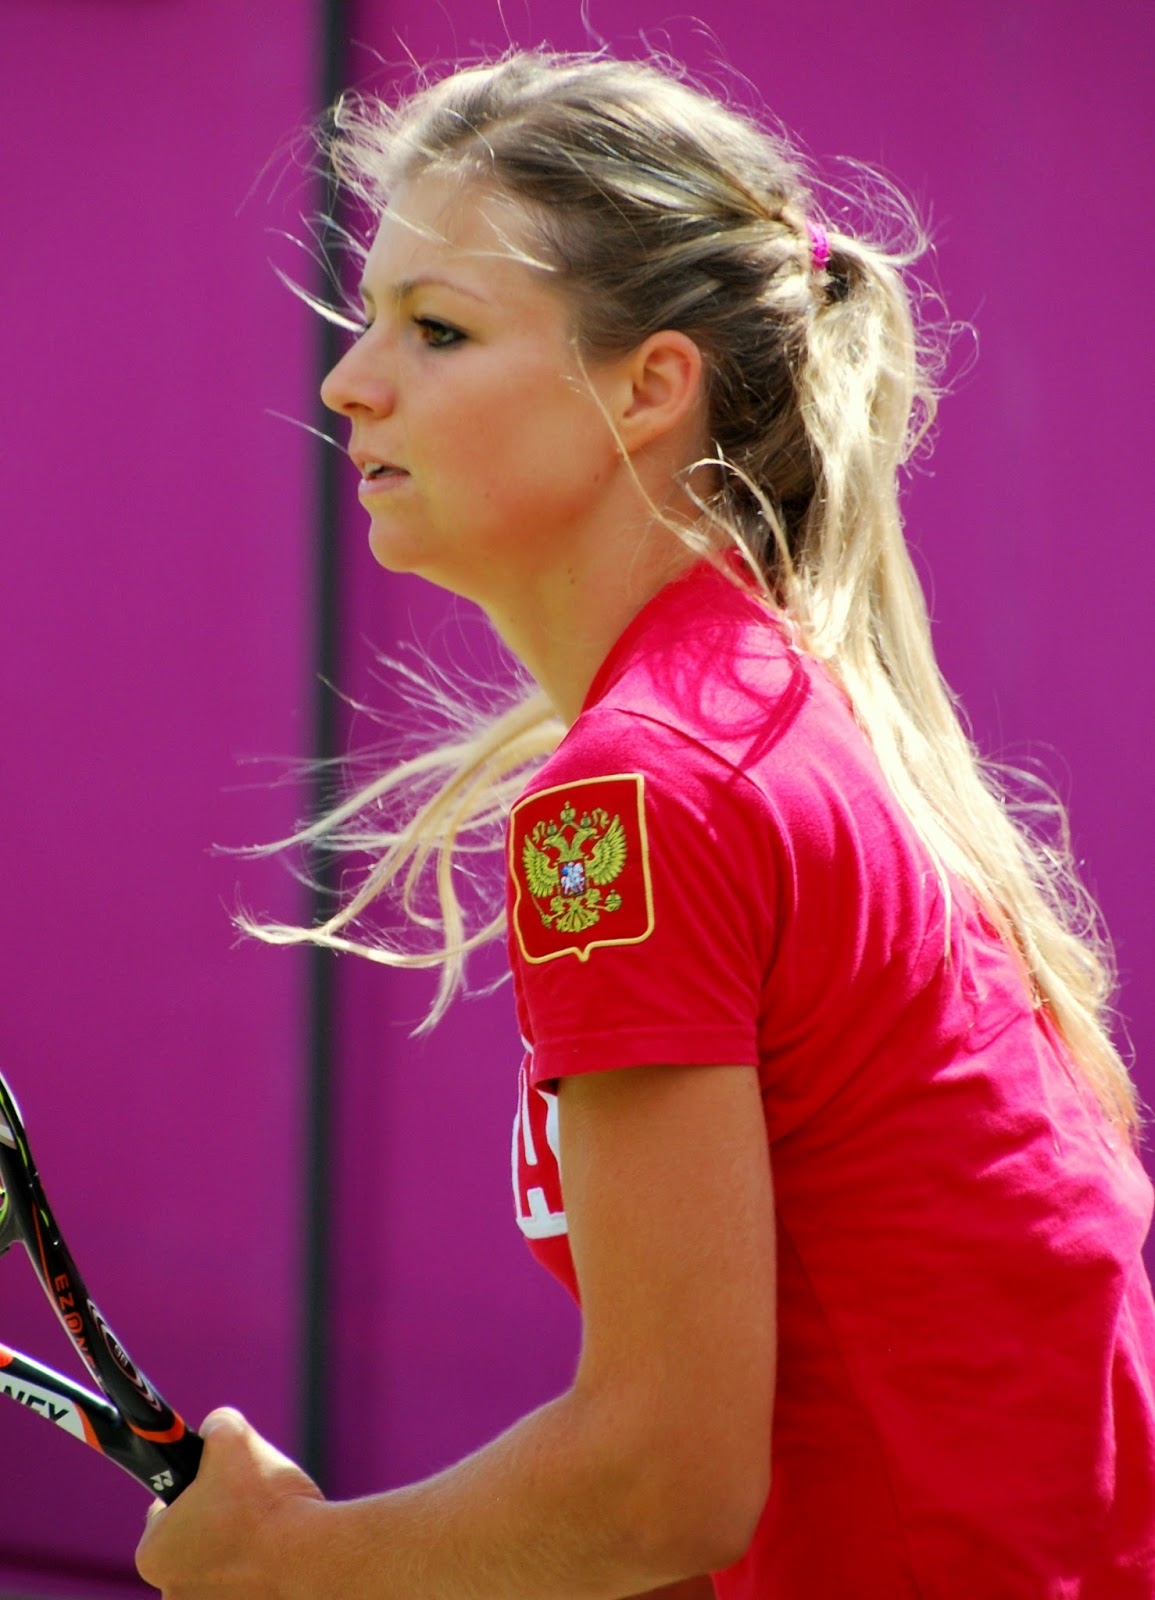 Top 10 Women Tennis Players With Hottest Body Wagz Hot